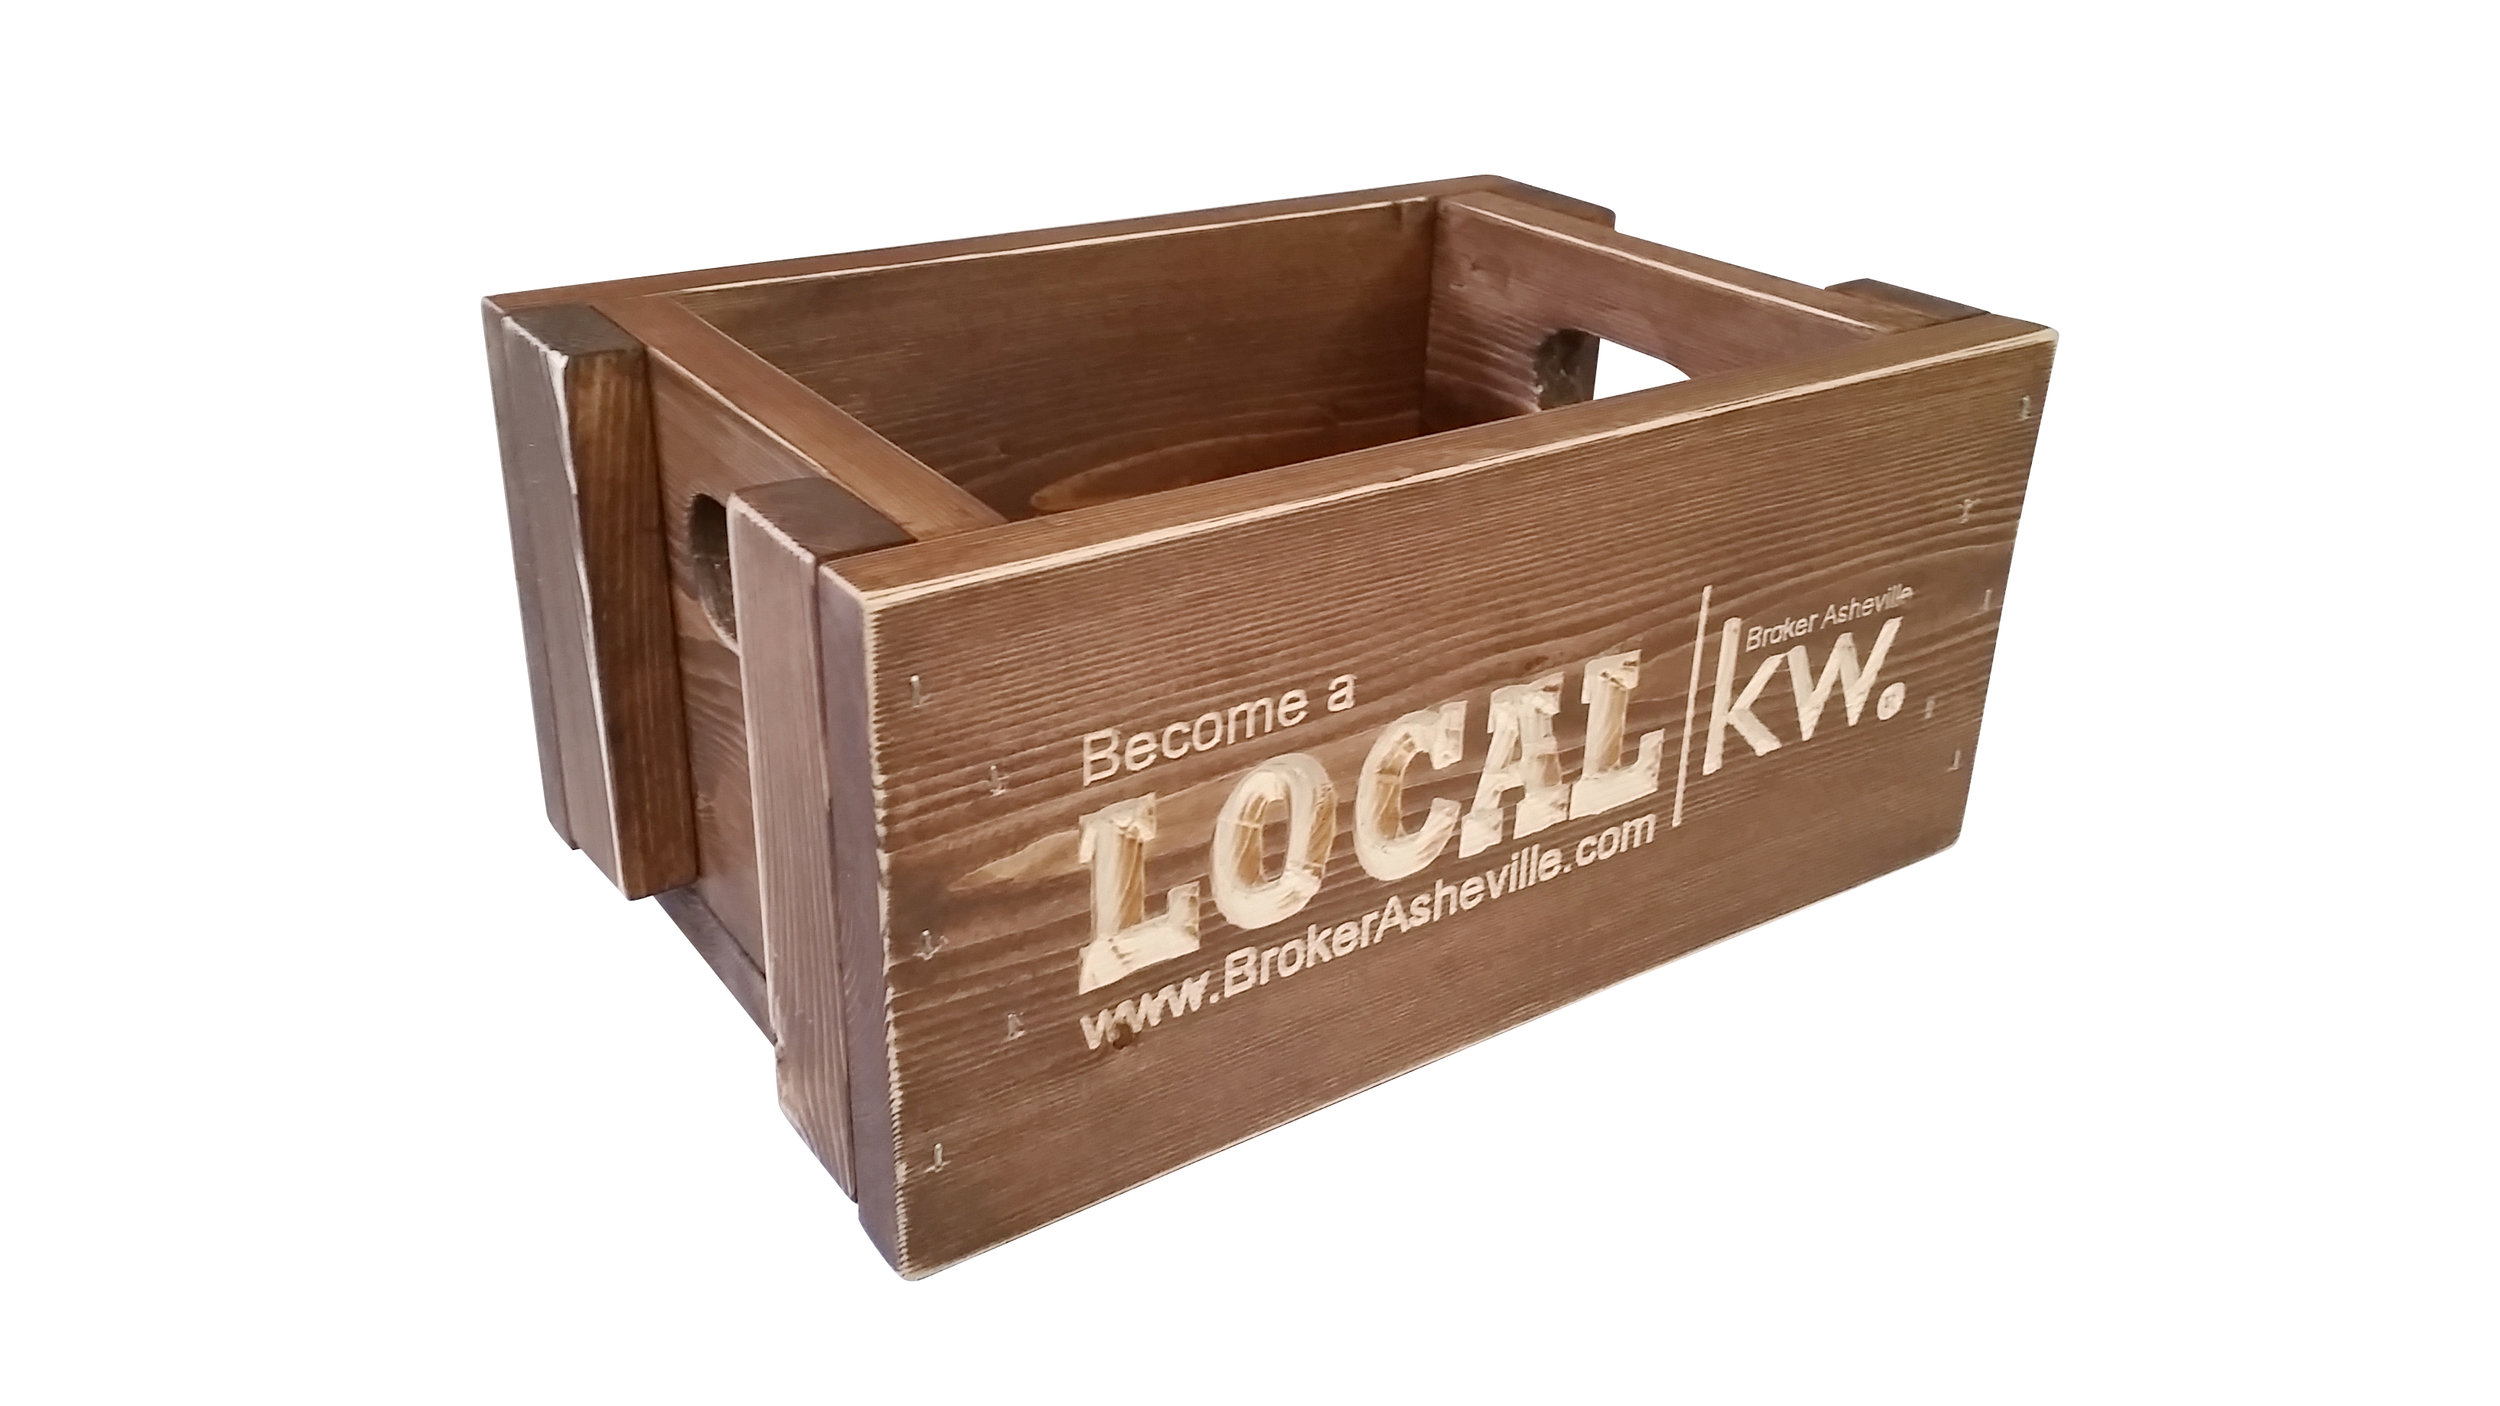 custom crates, asheville crate co.